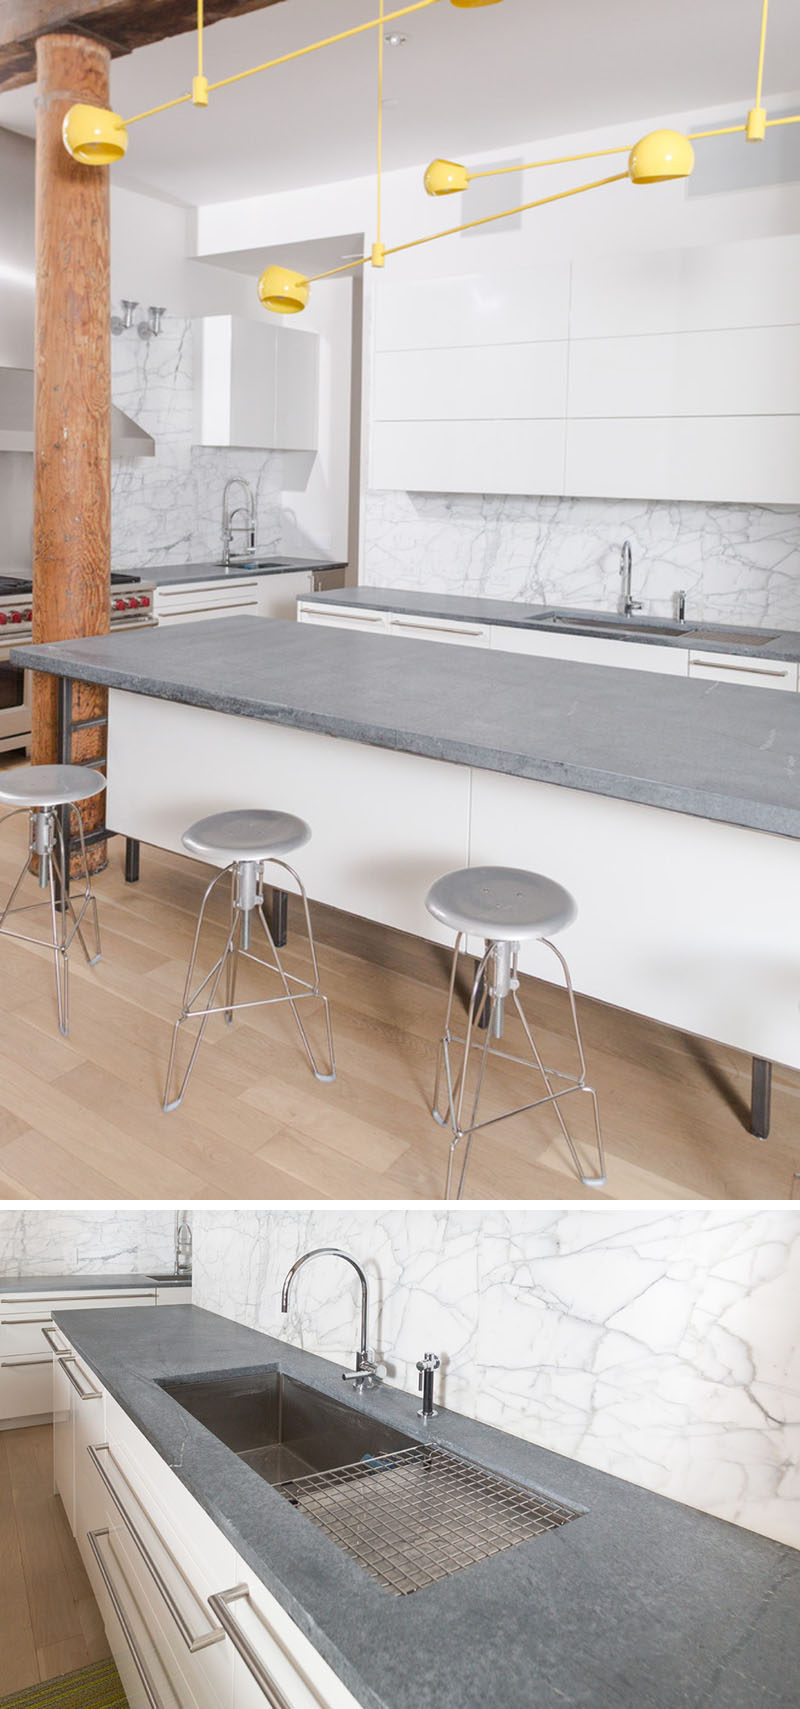 Materials You Can Use For A Countertop // Soapstone -- Soapstone ...